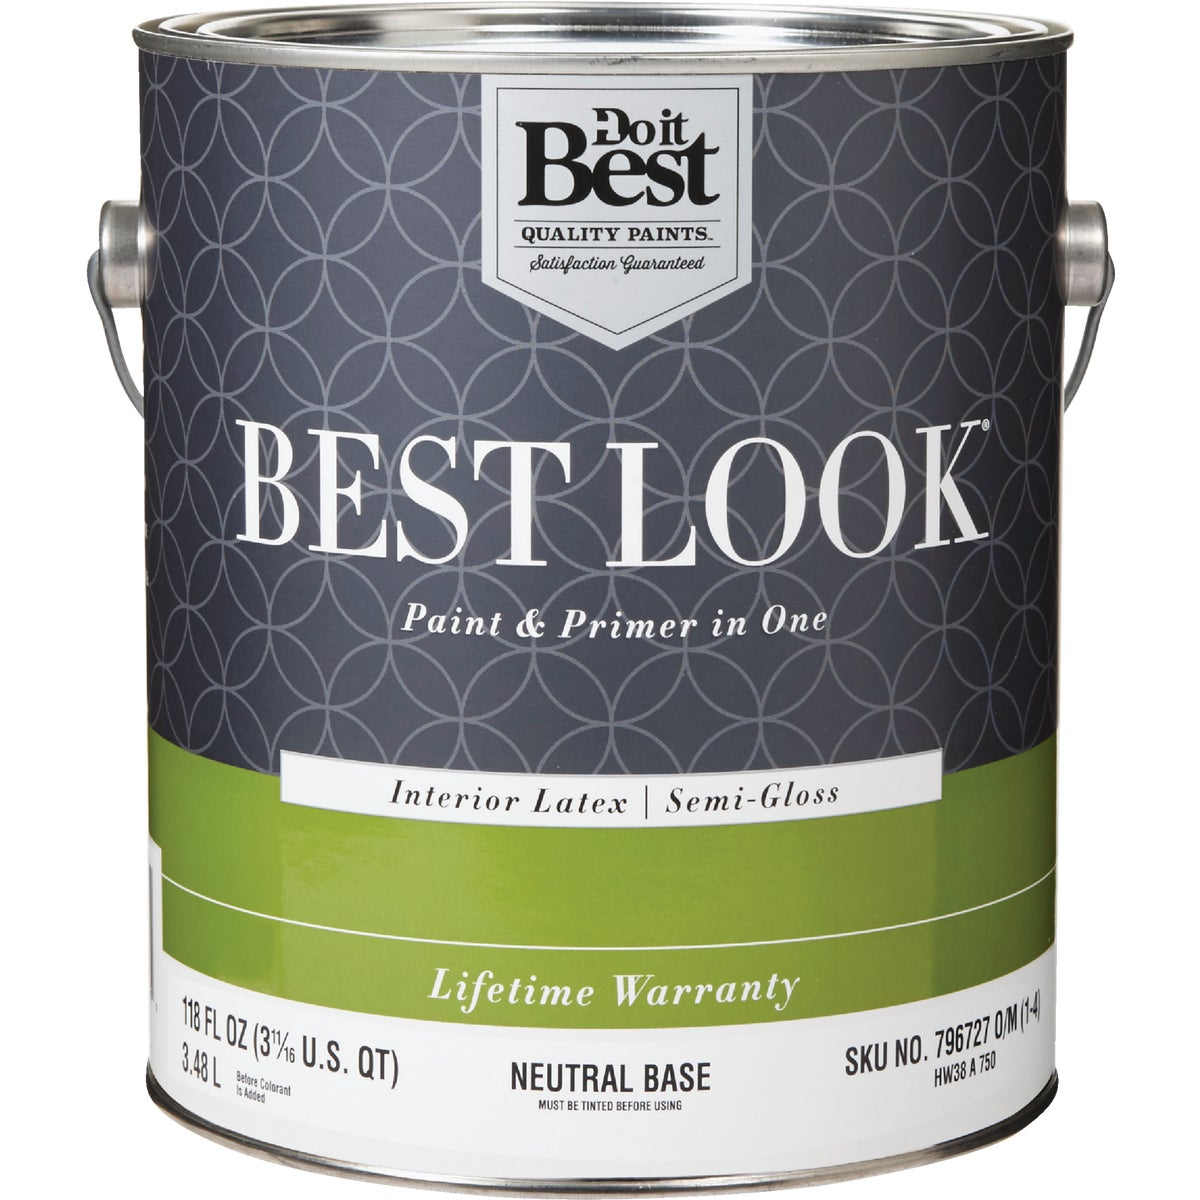 INT S/G NEUTRAL BS PAINT - HW38A0750-16 by Do it Best